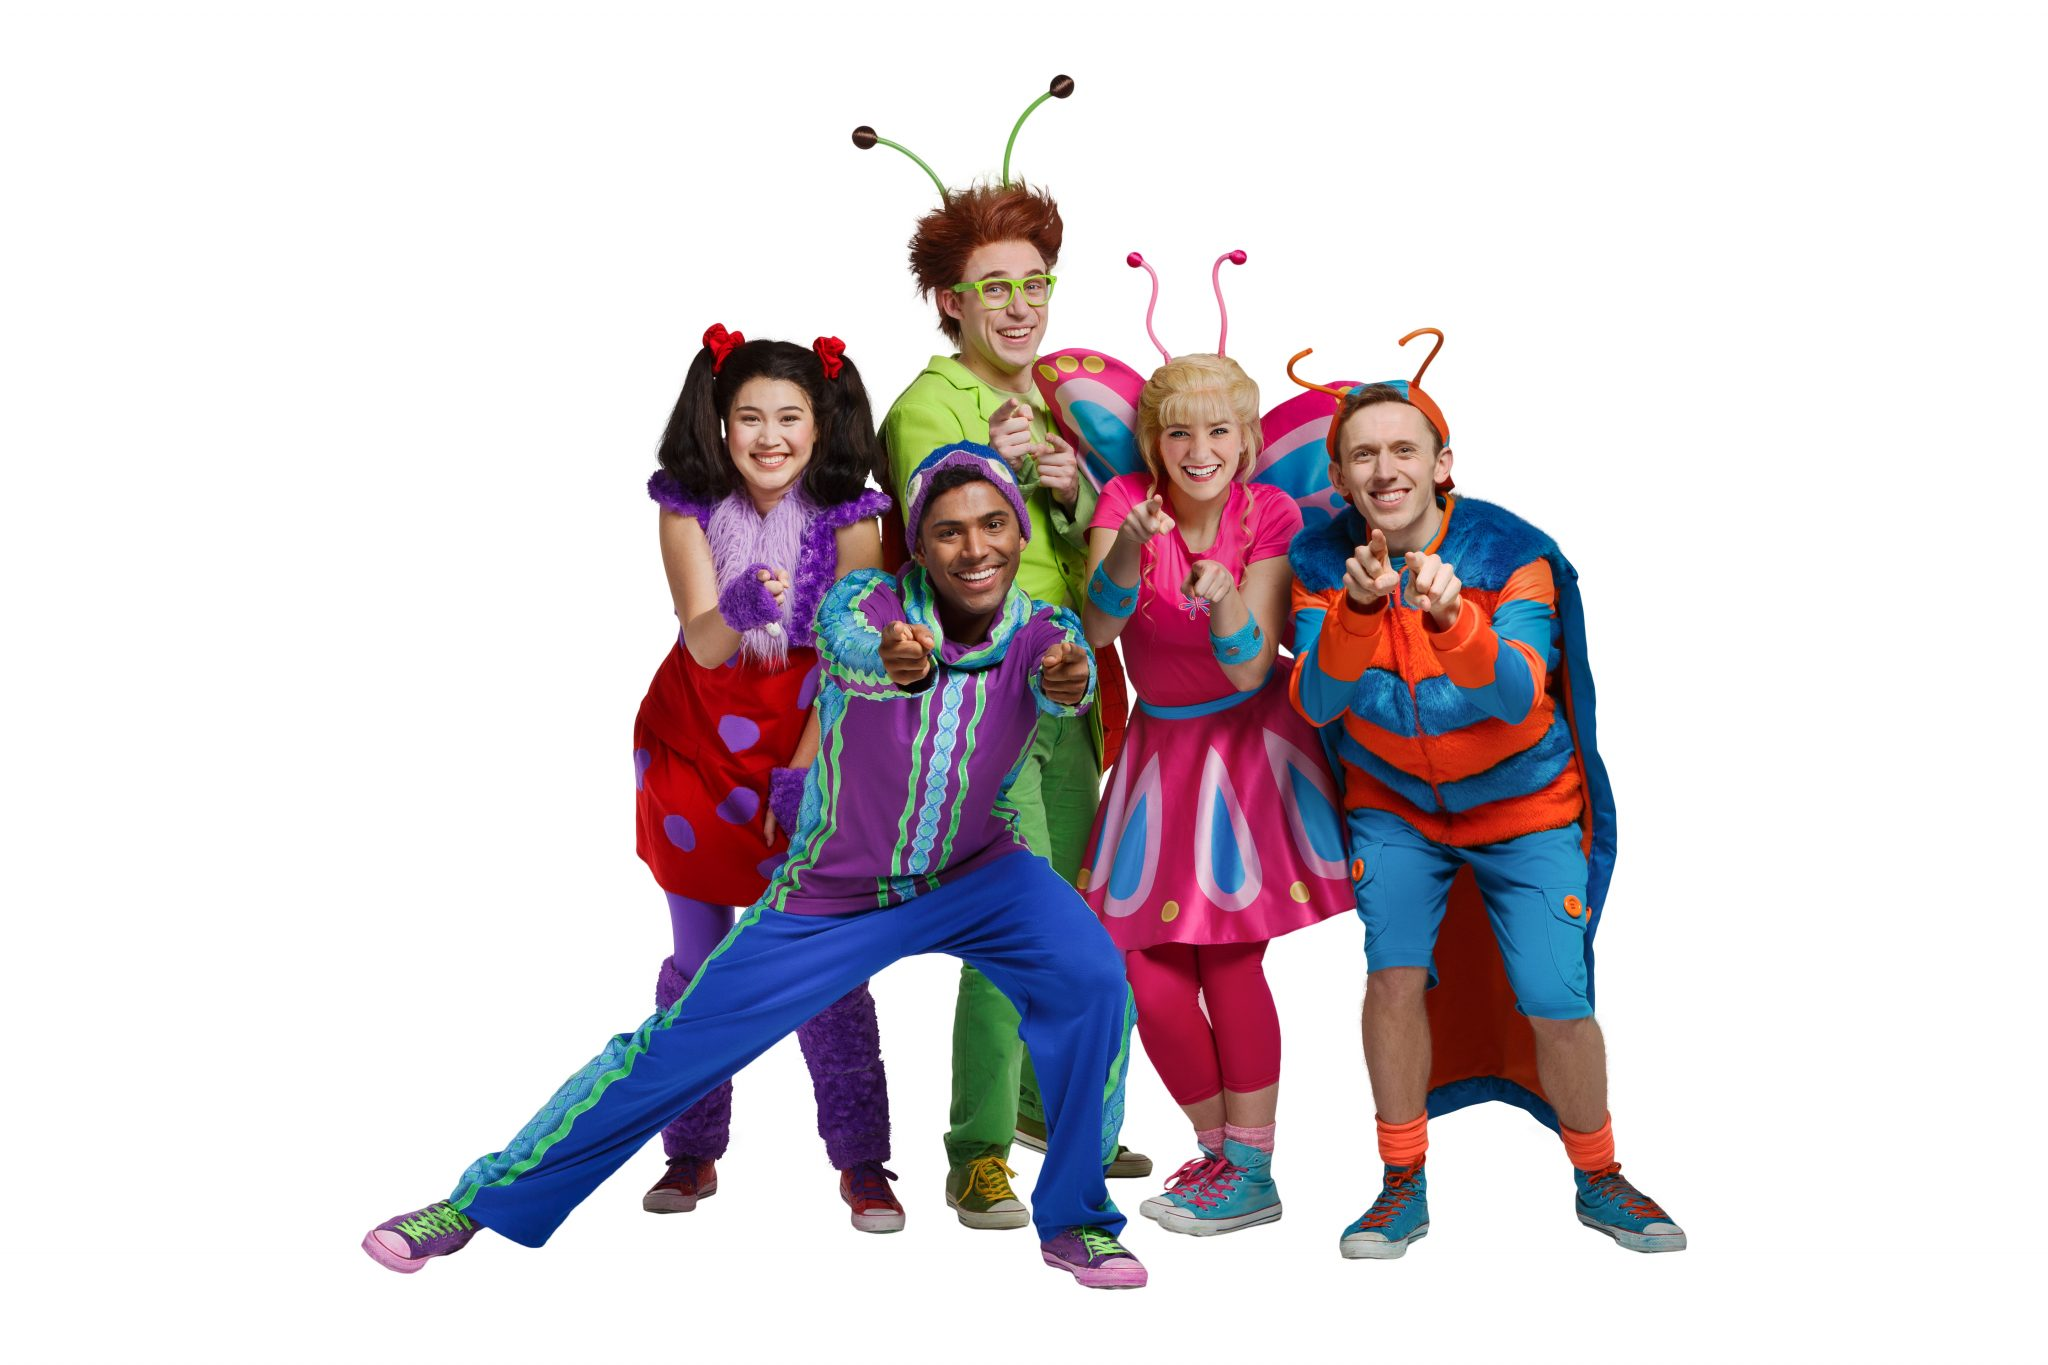 Popular CBC Kids' show The Moblees launches world premiere live show at St. Jacobs Country Playhouse